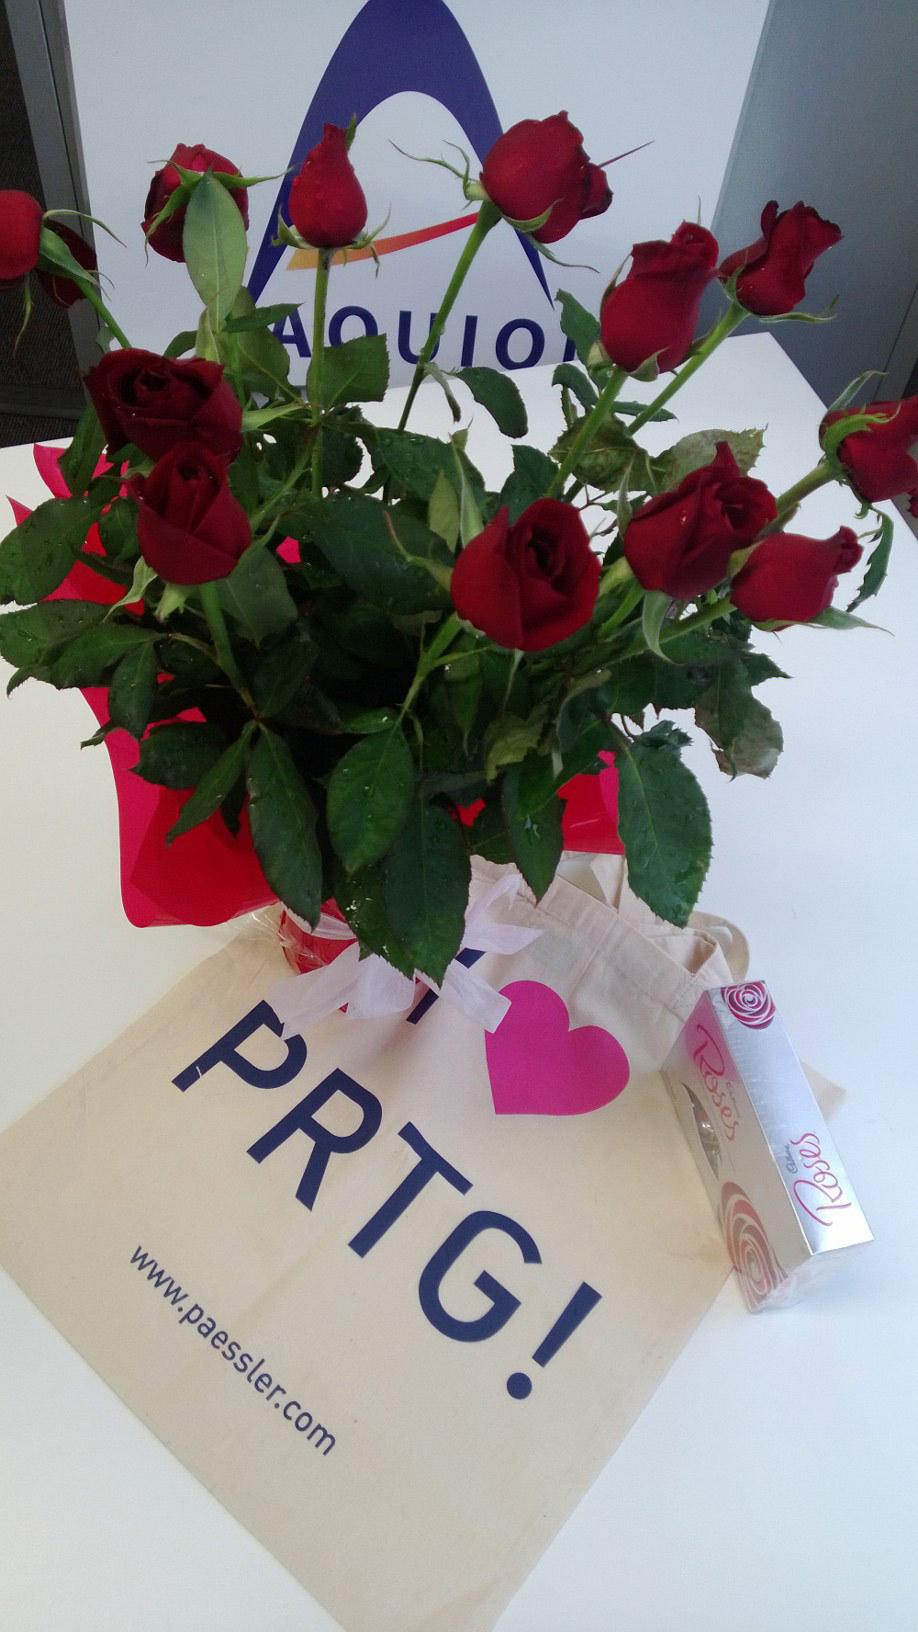 Thanks Aquion for the roses on Valentine's Day!